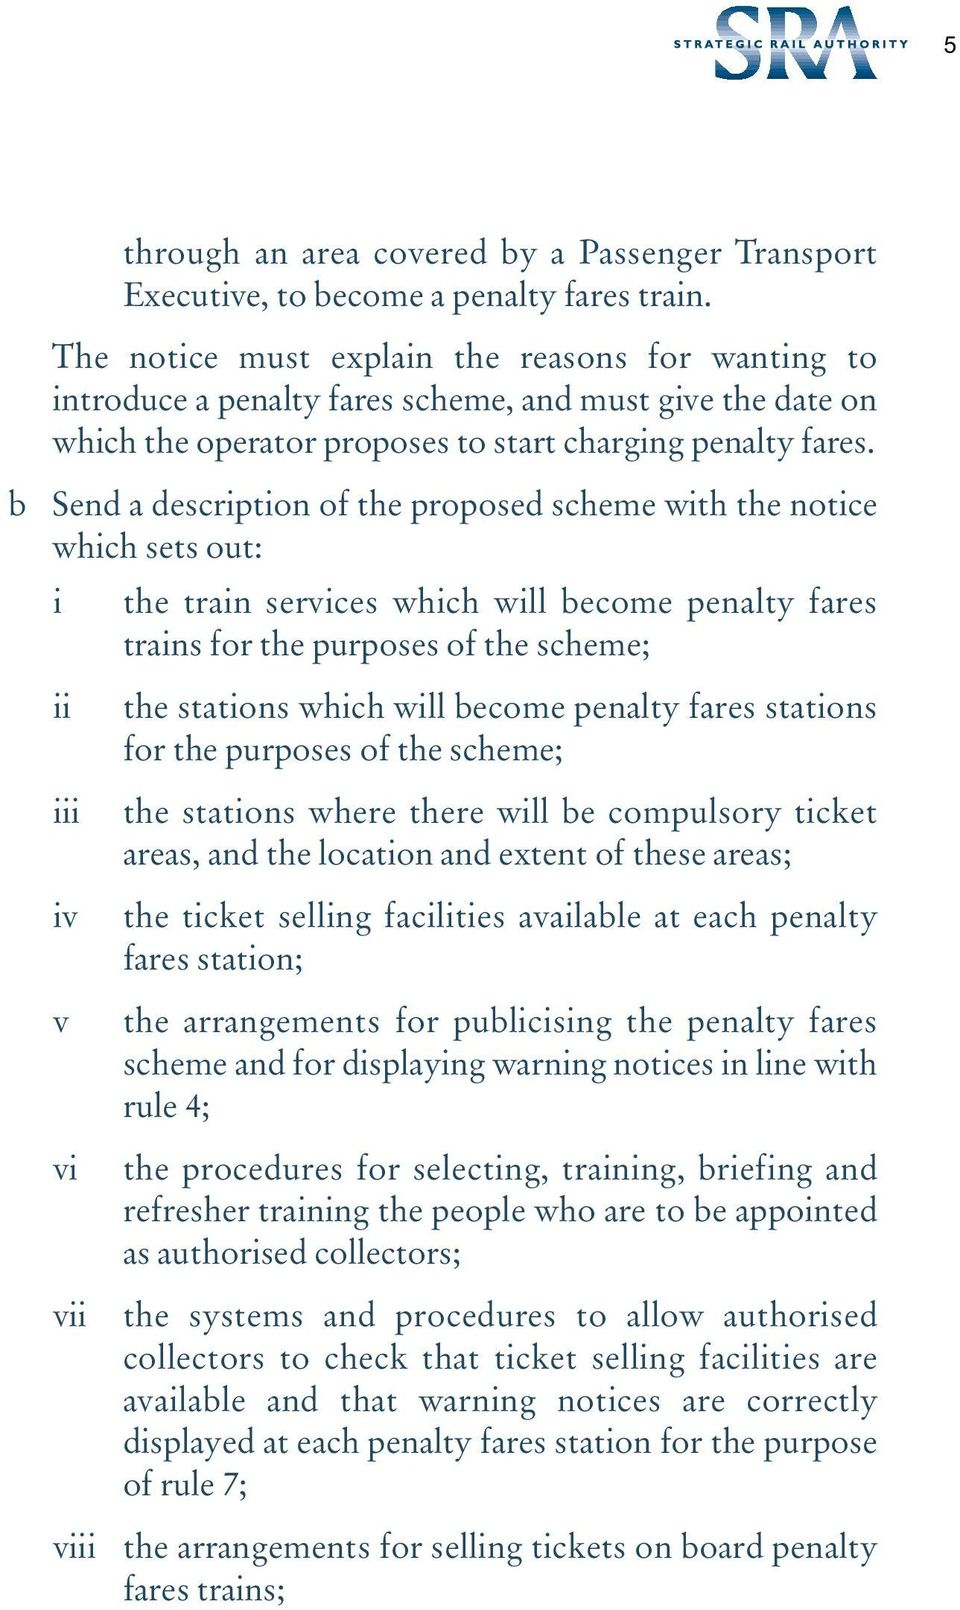 b Send a description of the proposed scheme with the notice which sets out: i the train services which will become penalty fares trains for the purposes of the scheme; ii iii iv v vi vii viii the